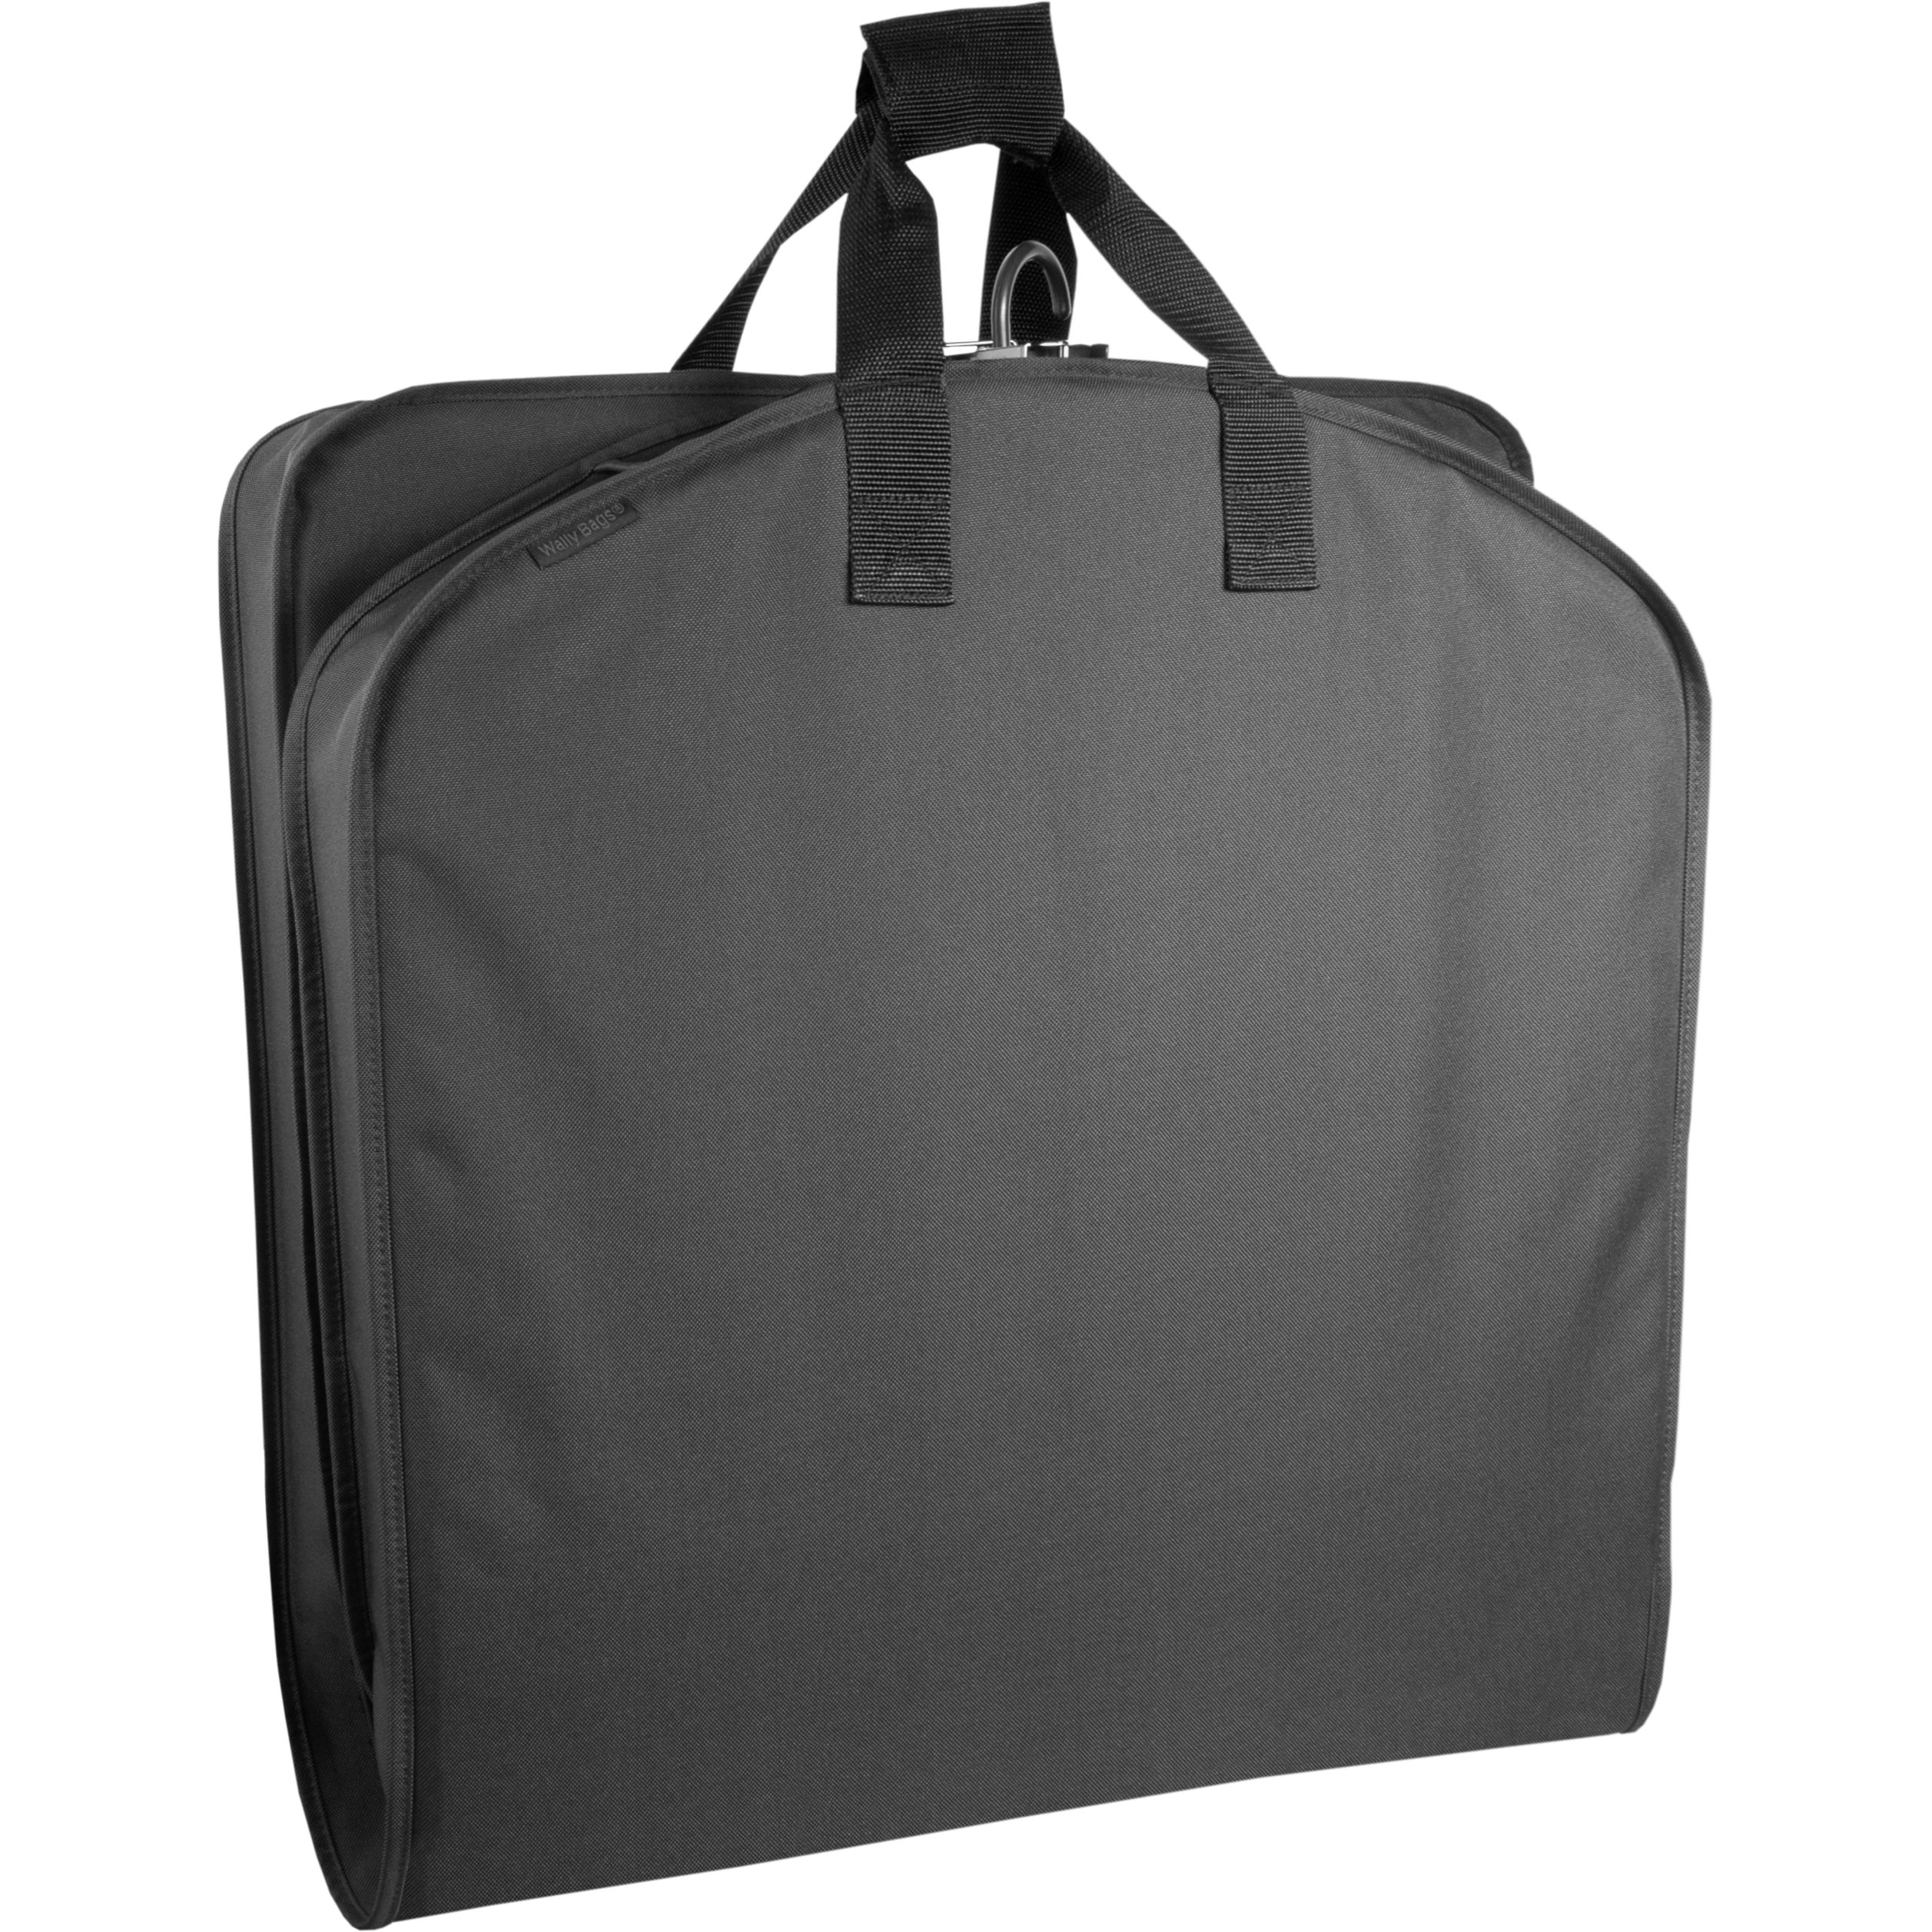 WallyBags Luggage 52'' Garment Bag, Black